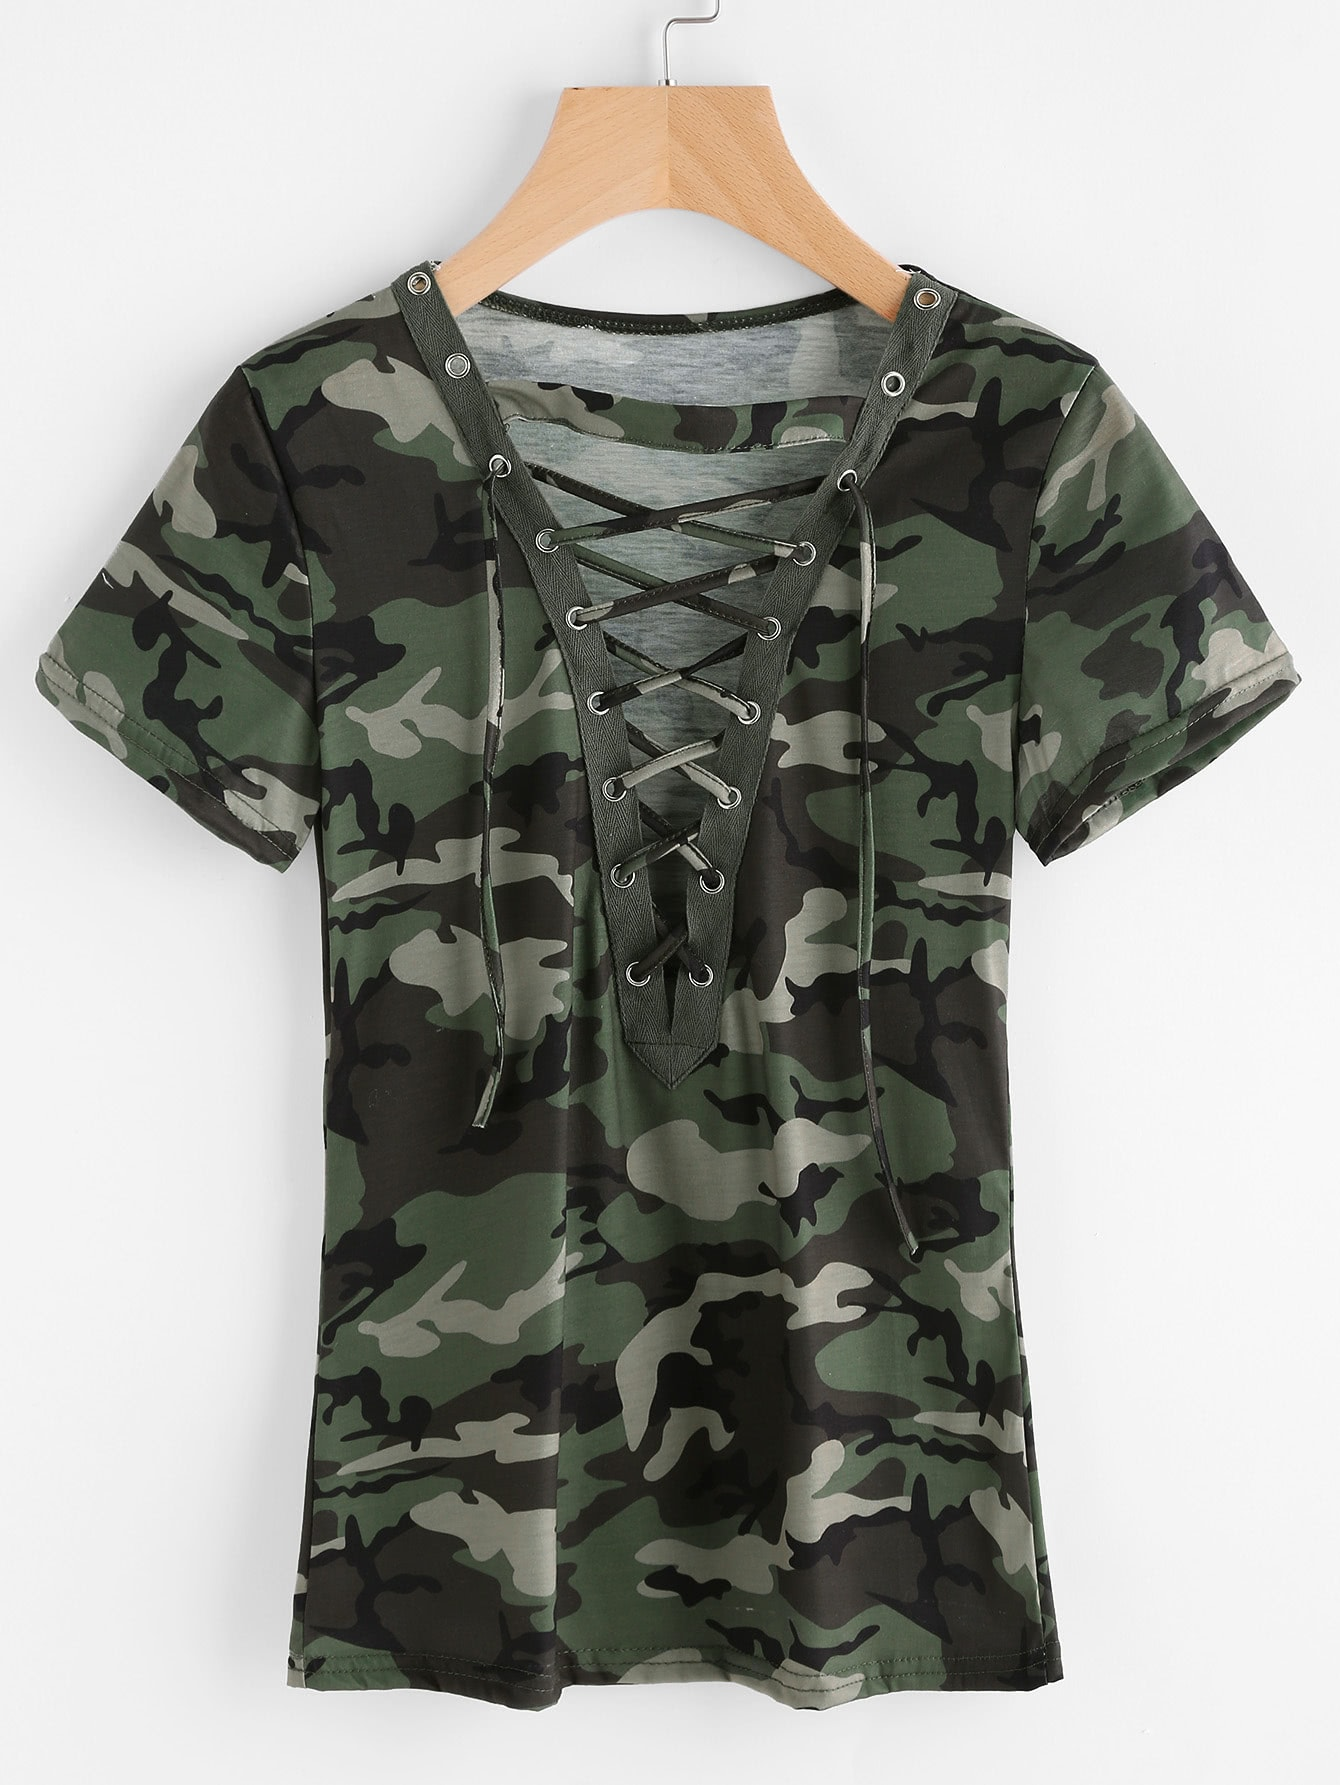 Camouflage print lace up front teefor women romwe for Camouflage t shirt printing